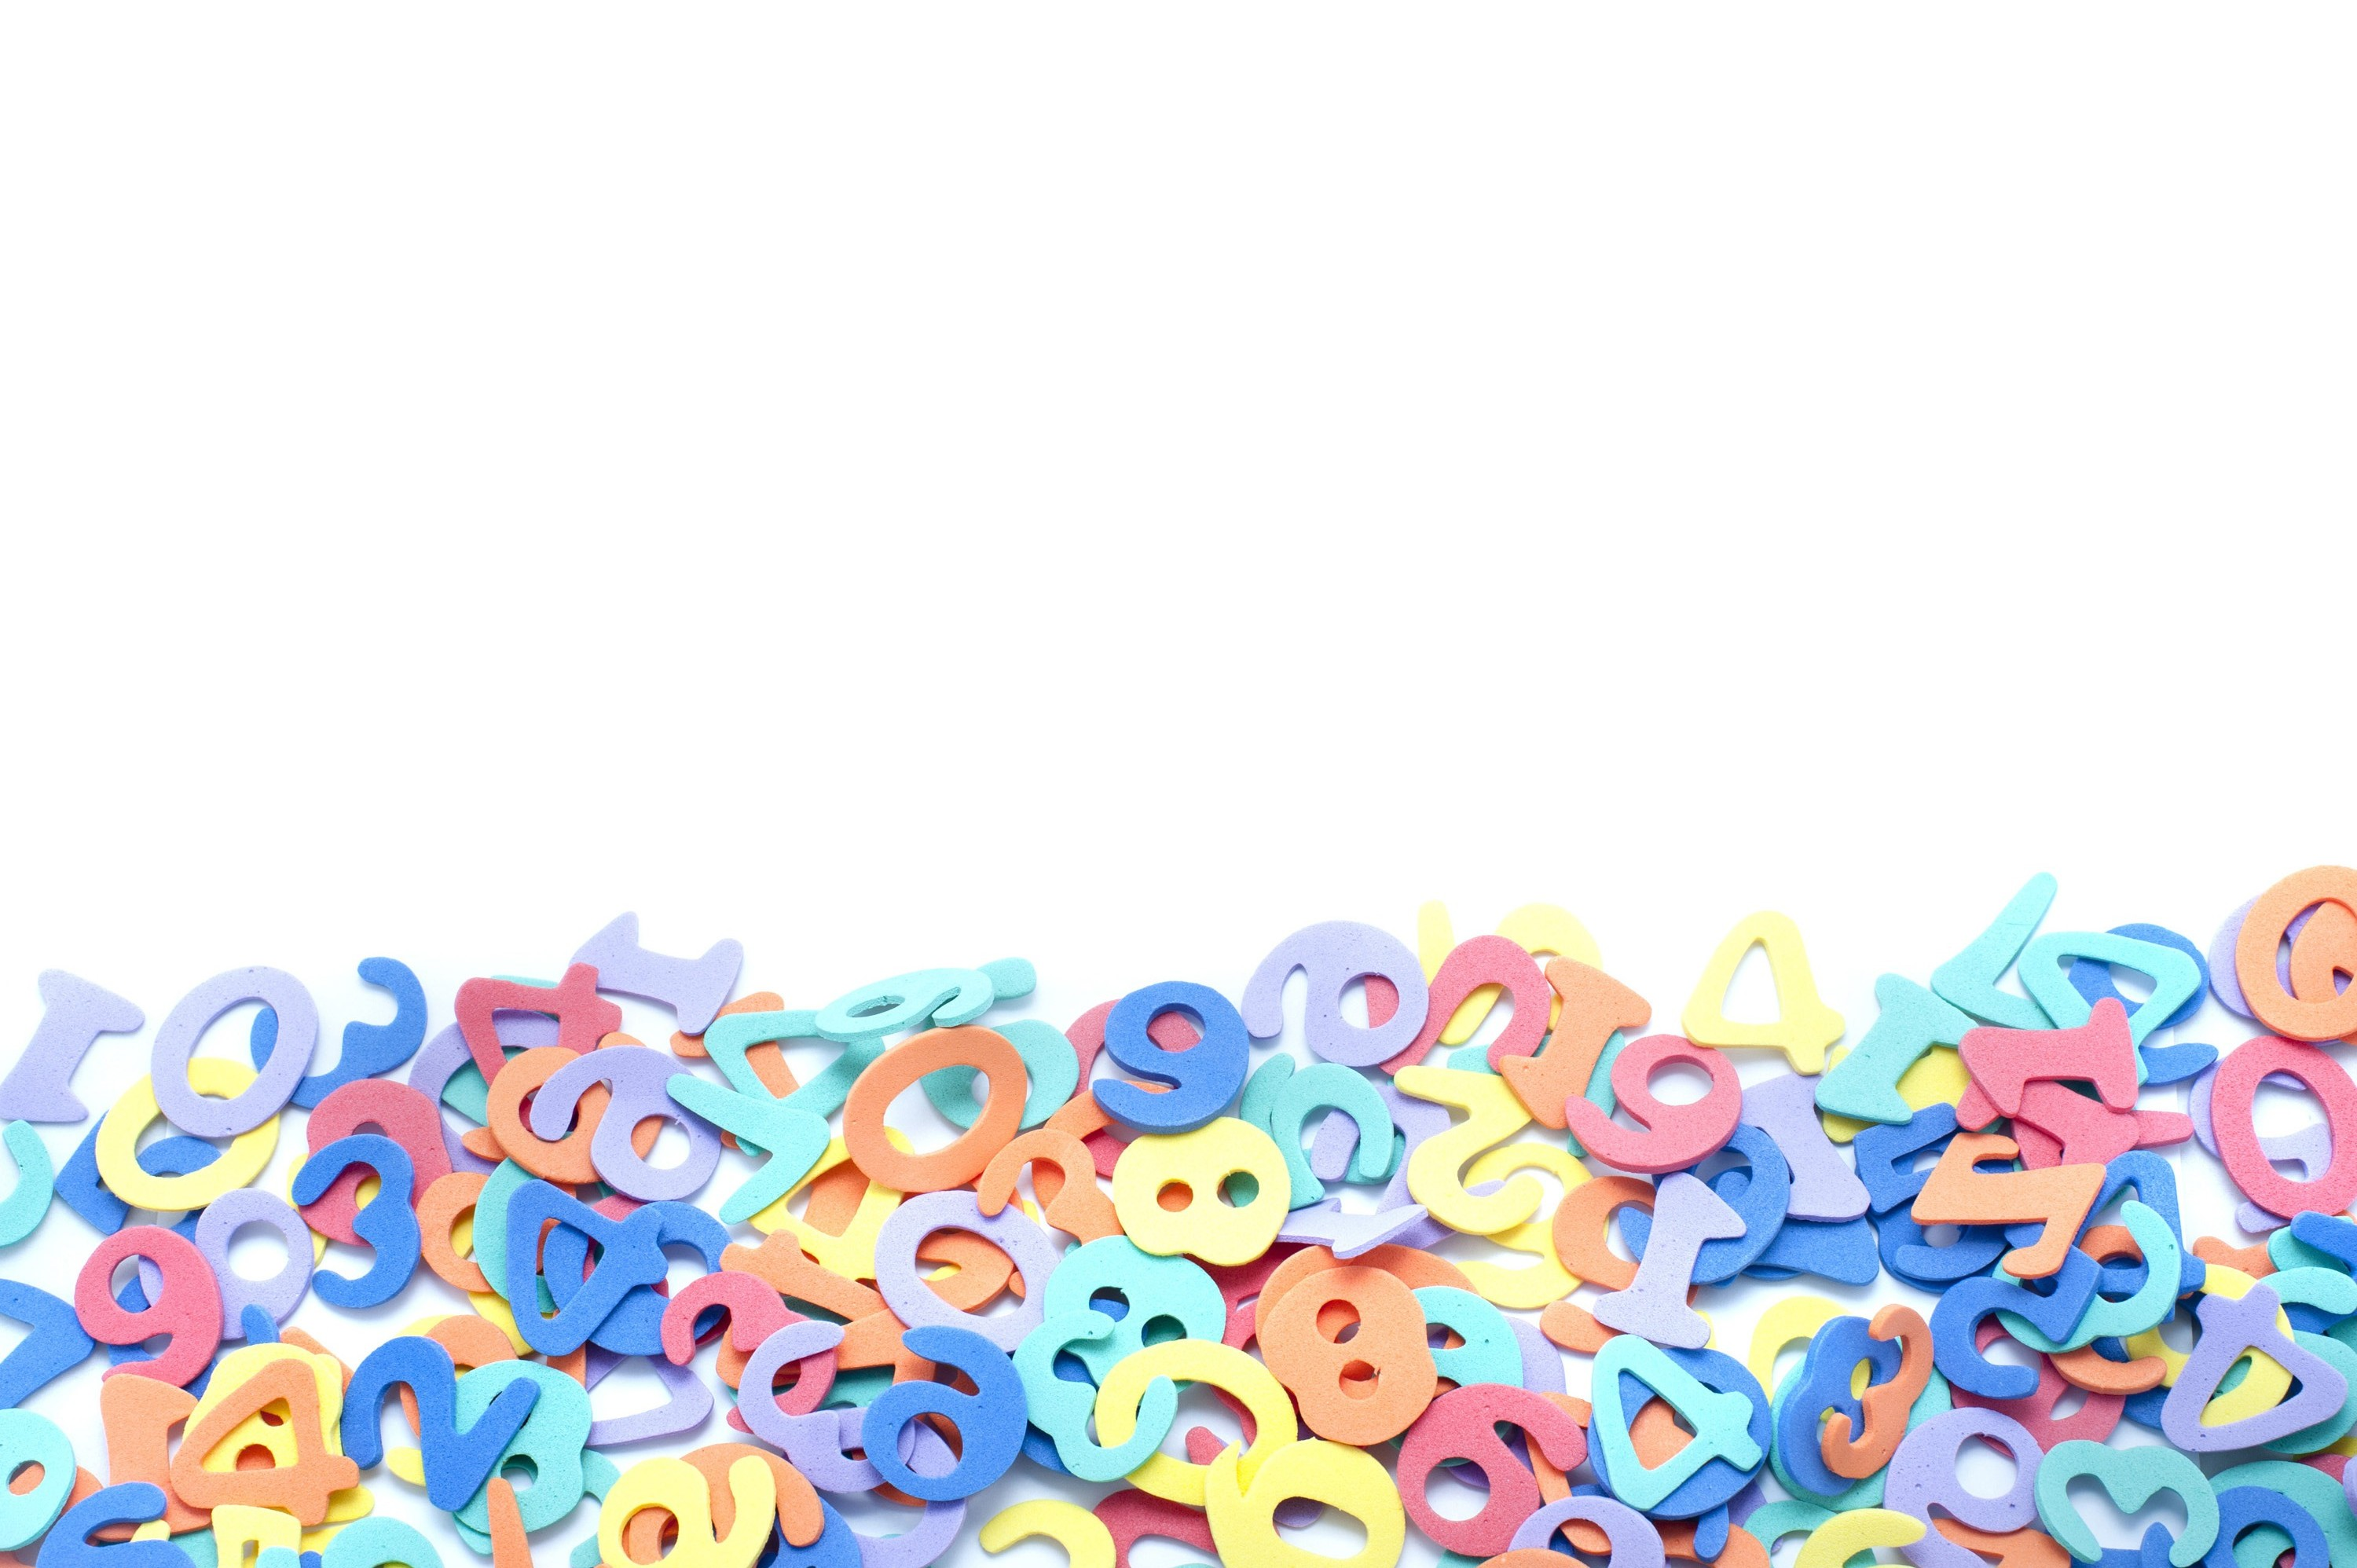 Free Image Of Bunch Colorful Numbers On White Background